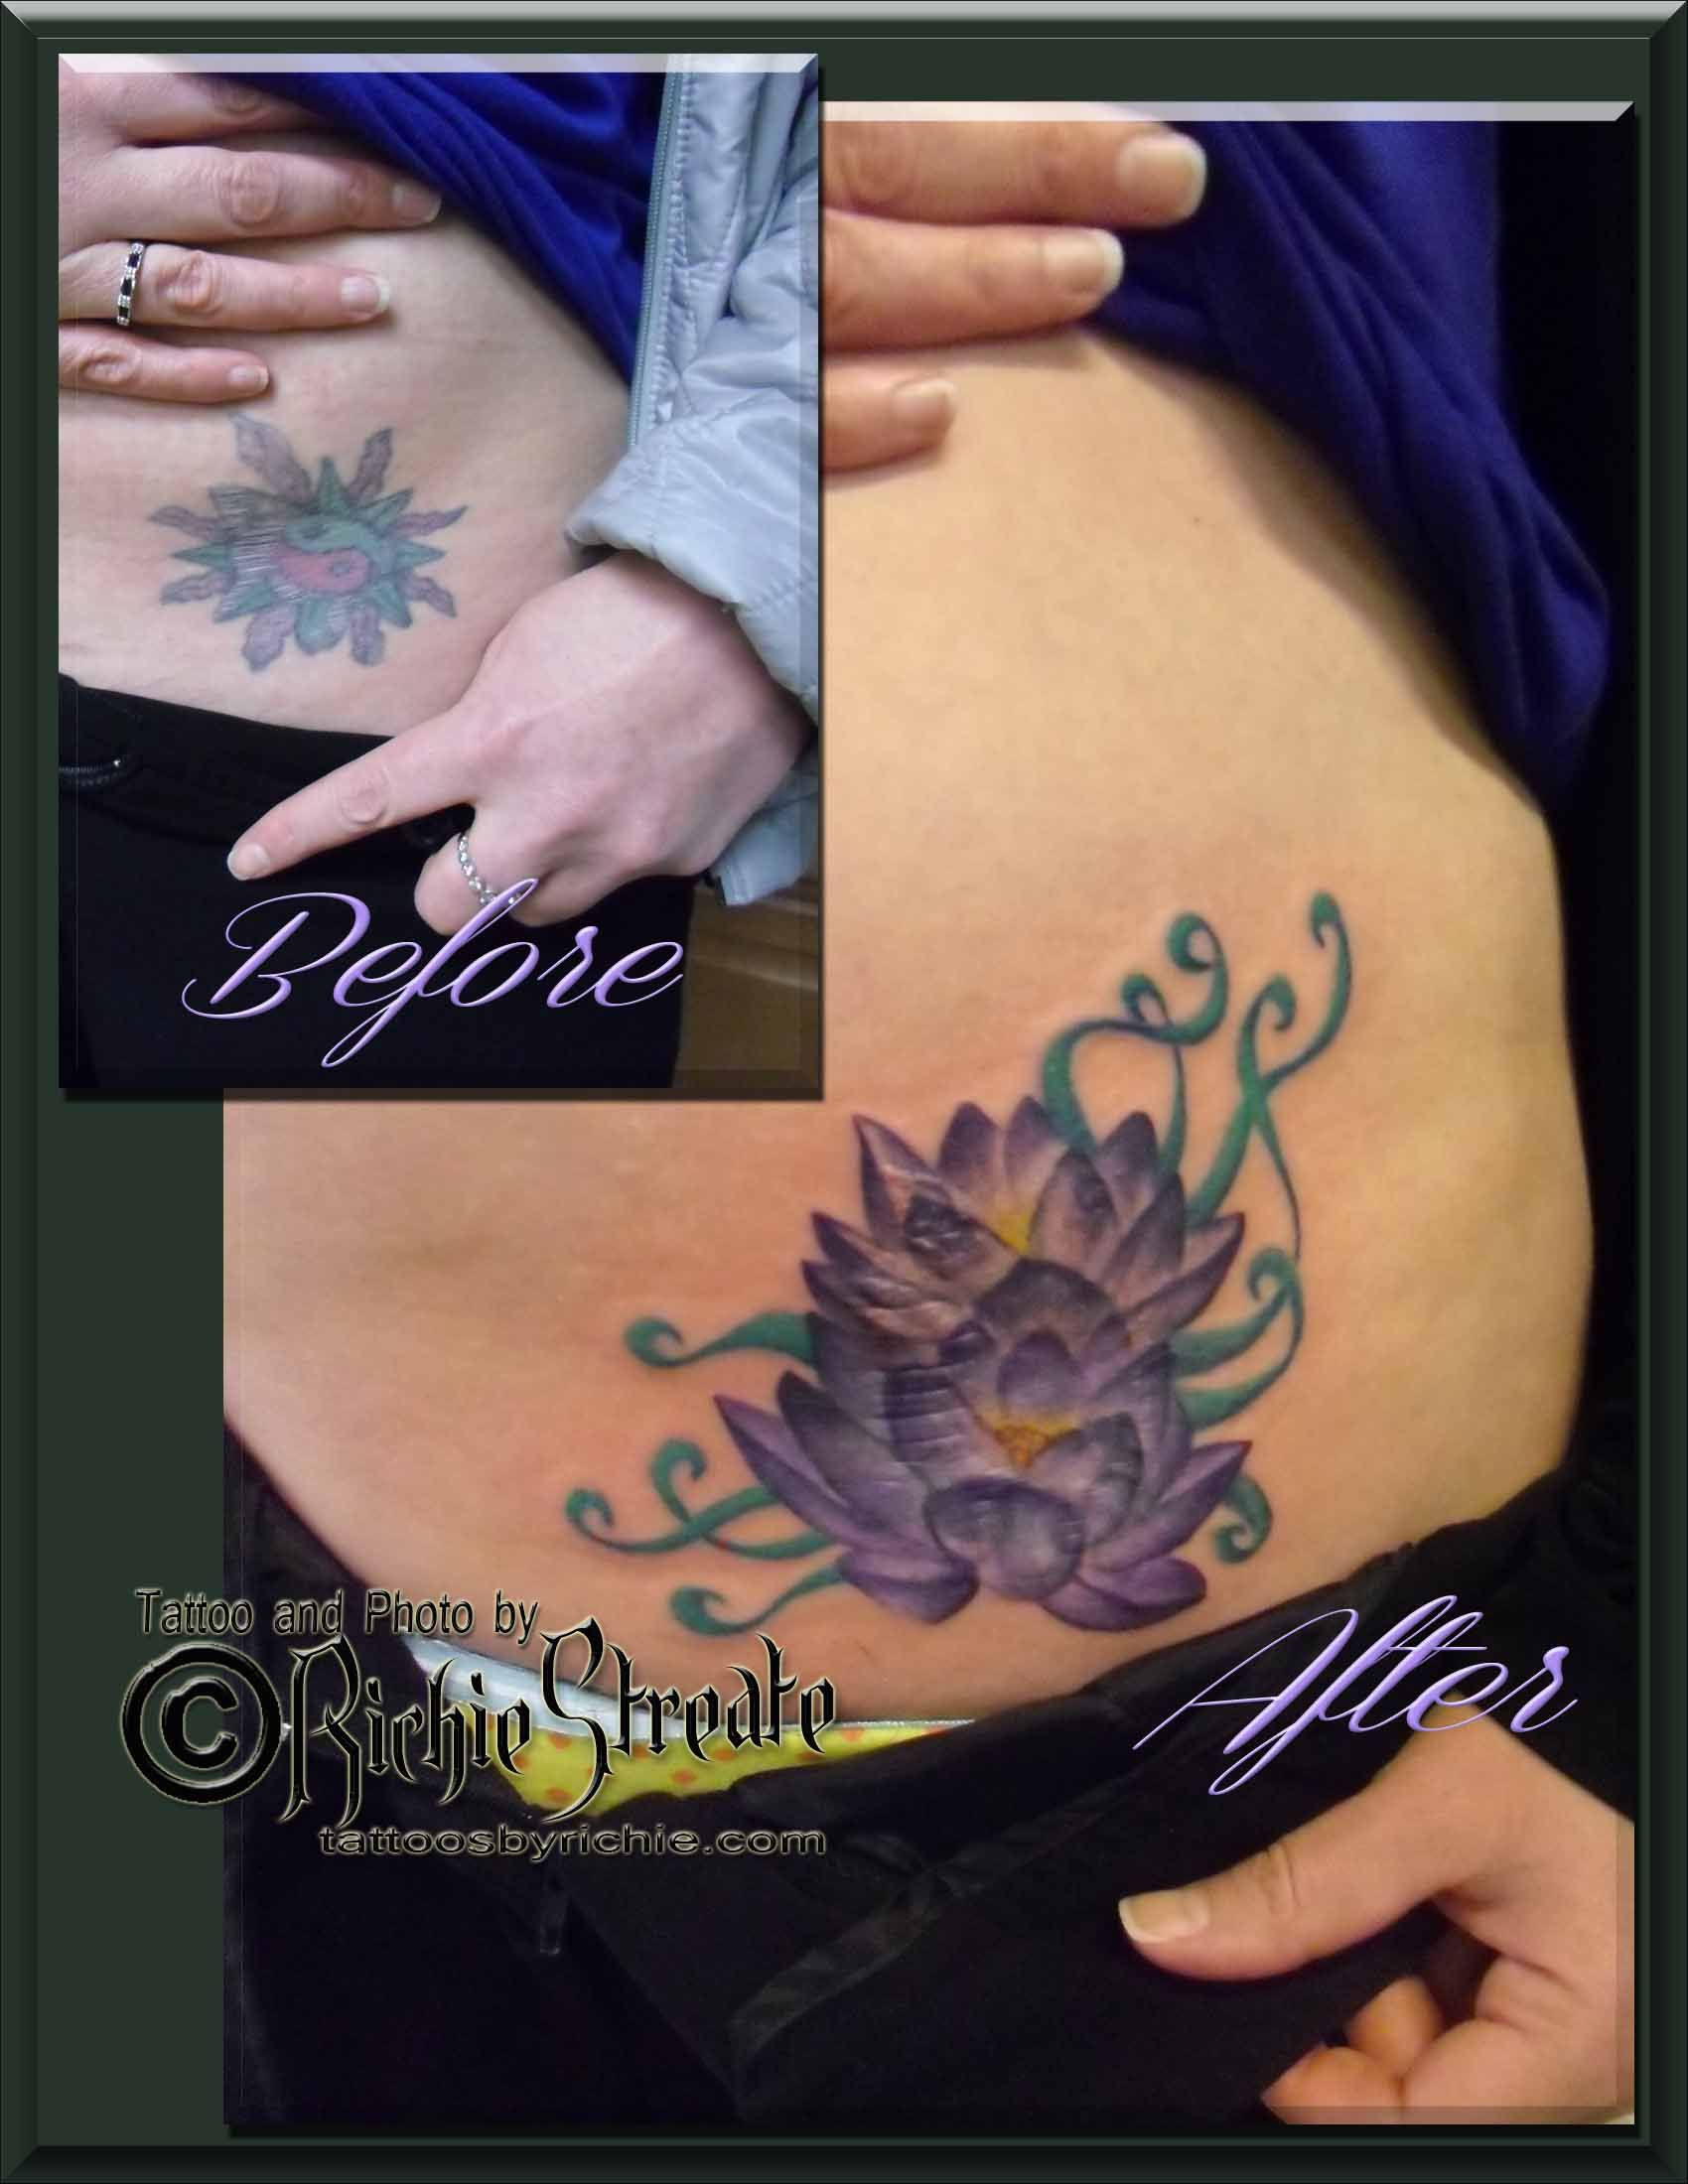 Lotus Flower Cover Up Tattoo Cover Up Tattoos By Richie Streate